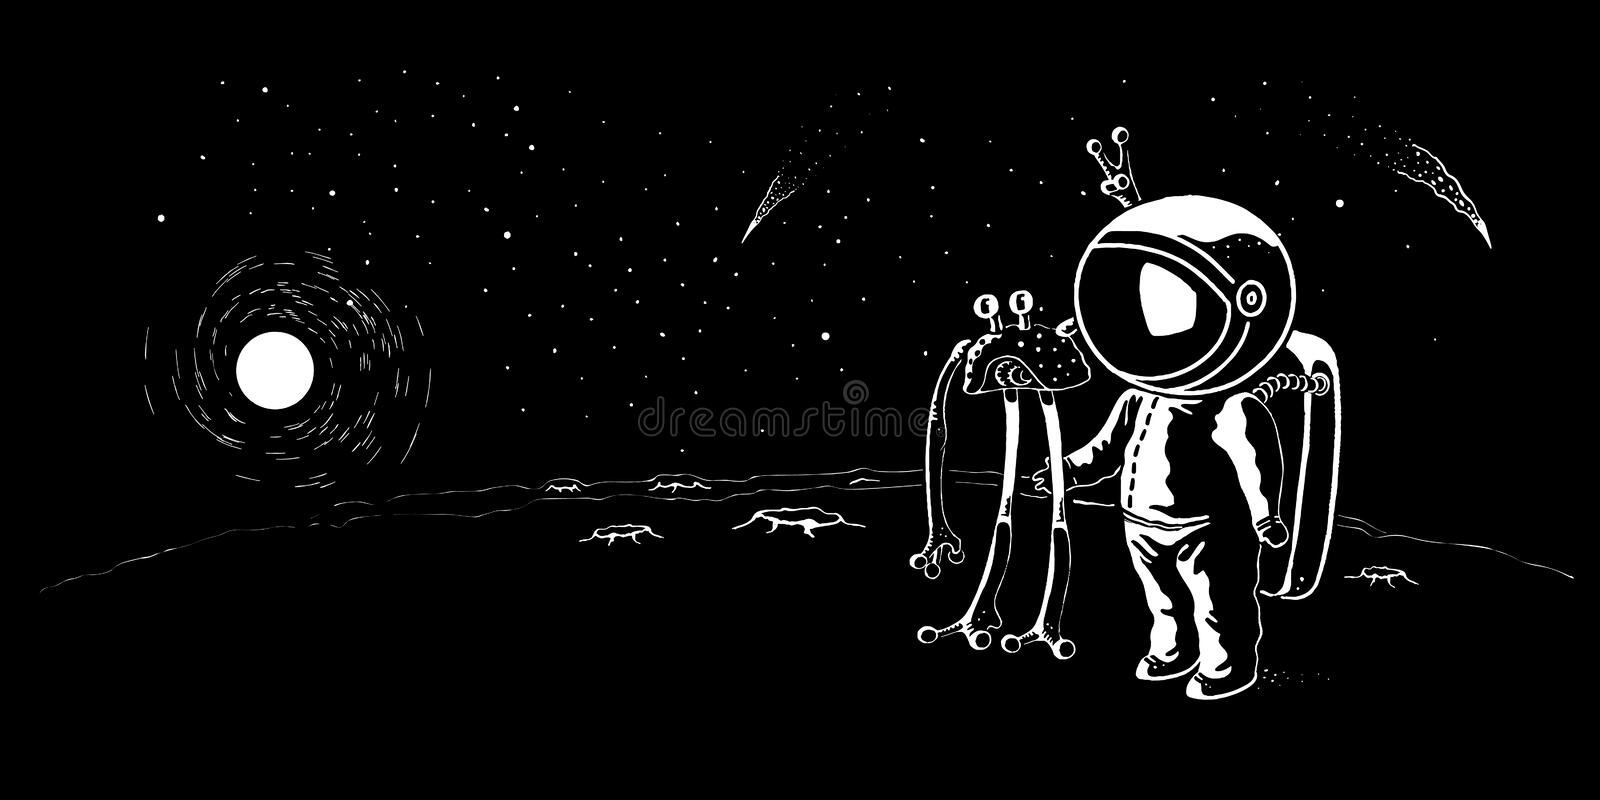 Astronaut meeting ufo vector illustration, banner. Man traveling in the galaxy to stars and planets. Scientific journey concept banner